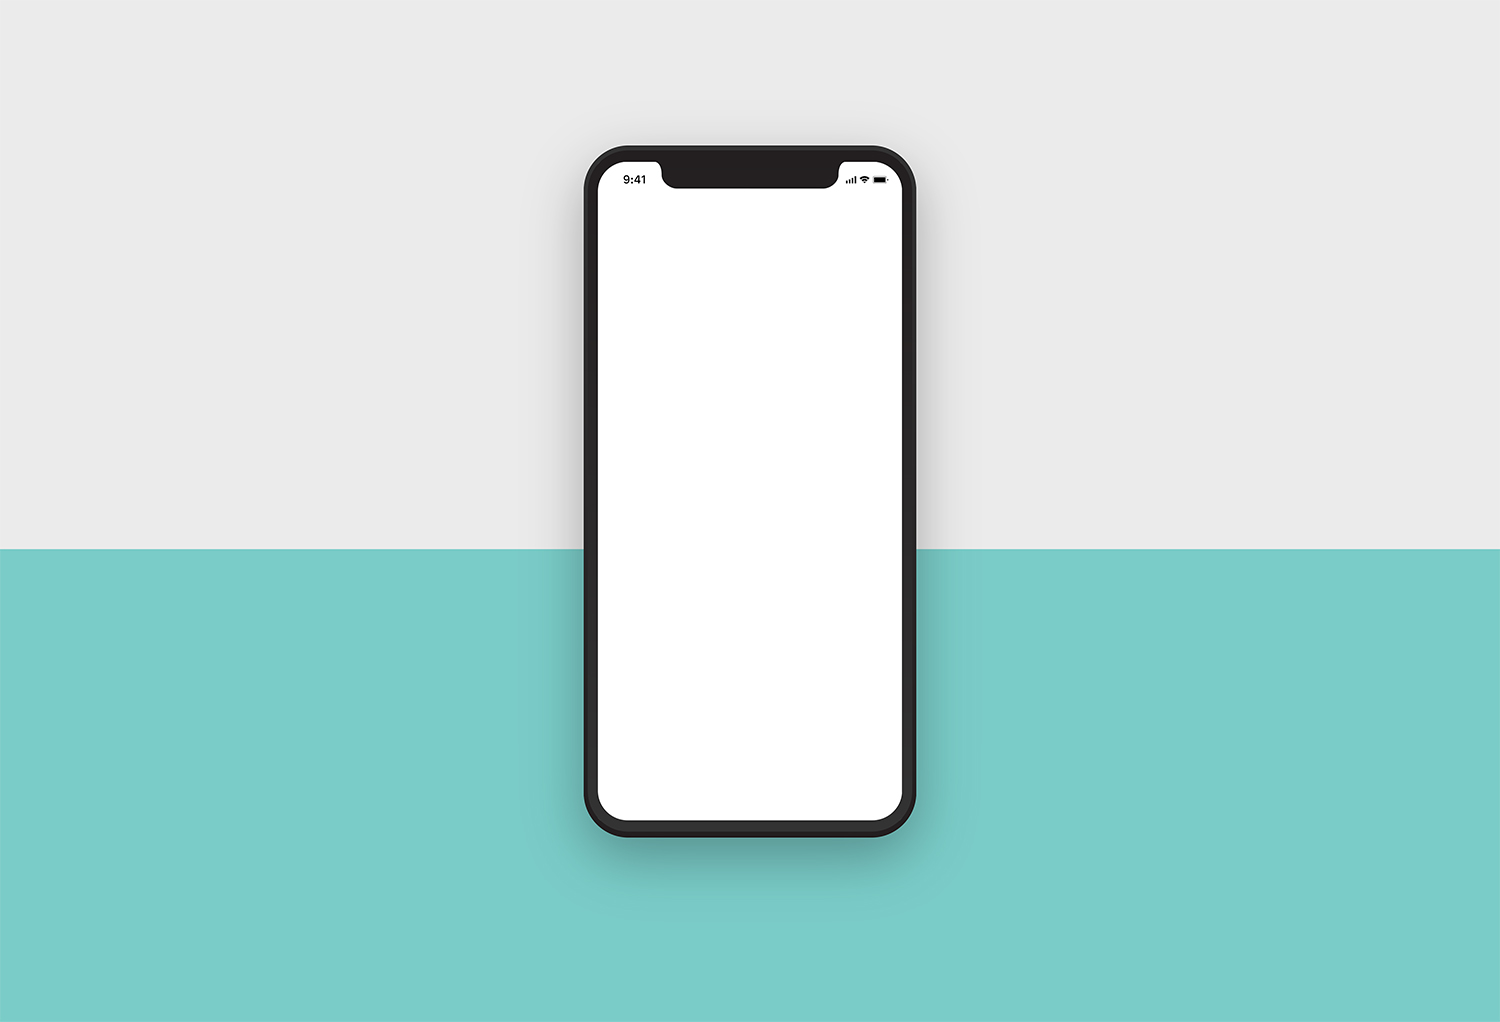 iPhone X Clean Mockup